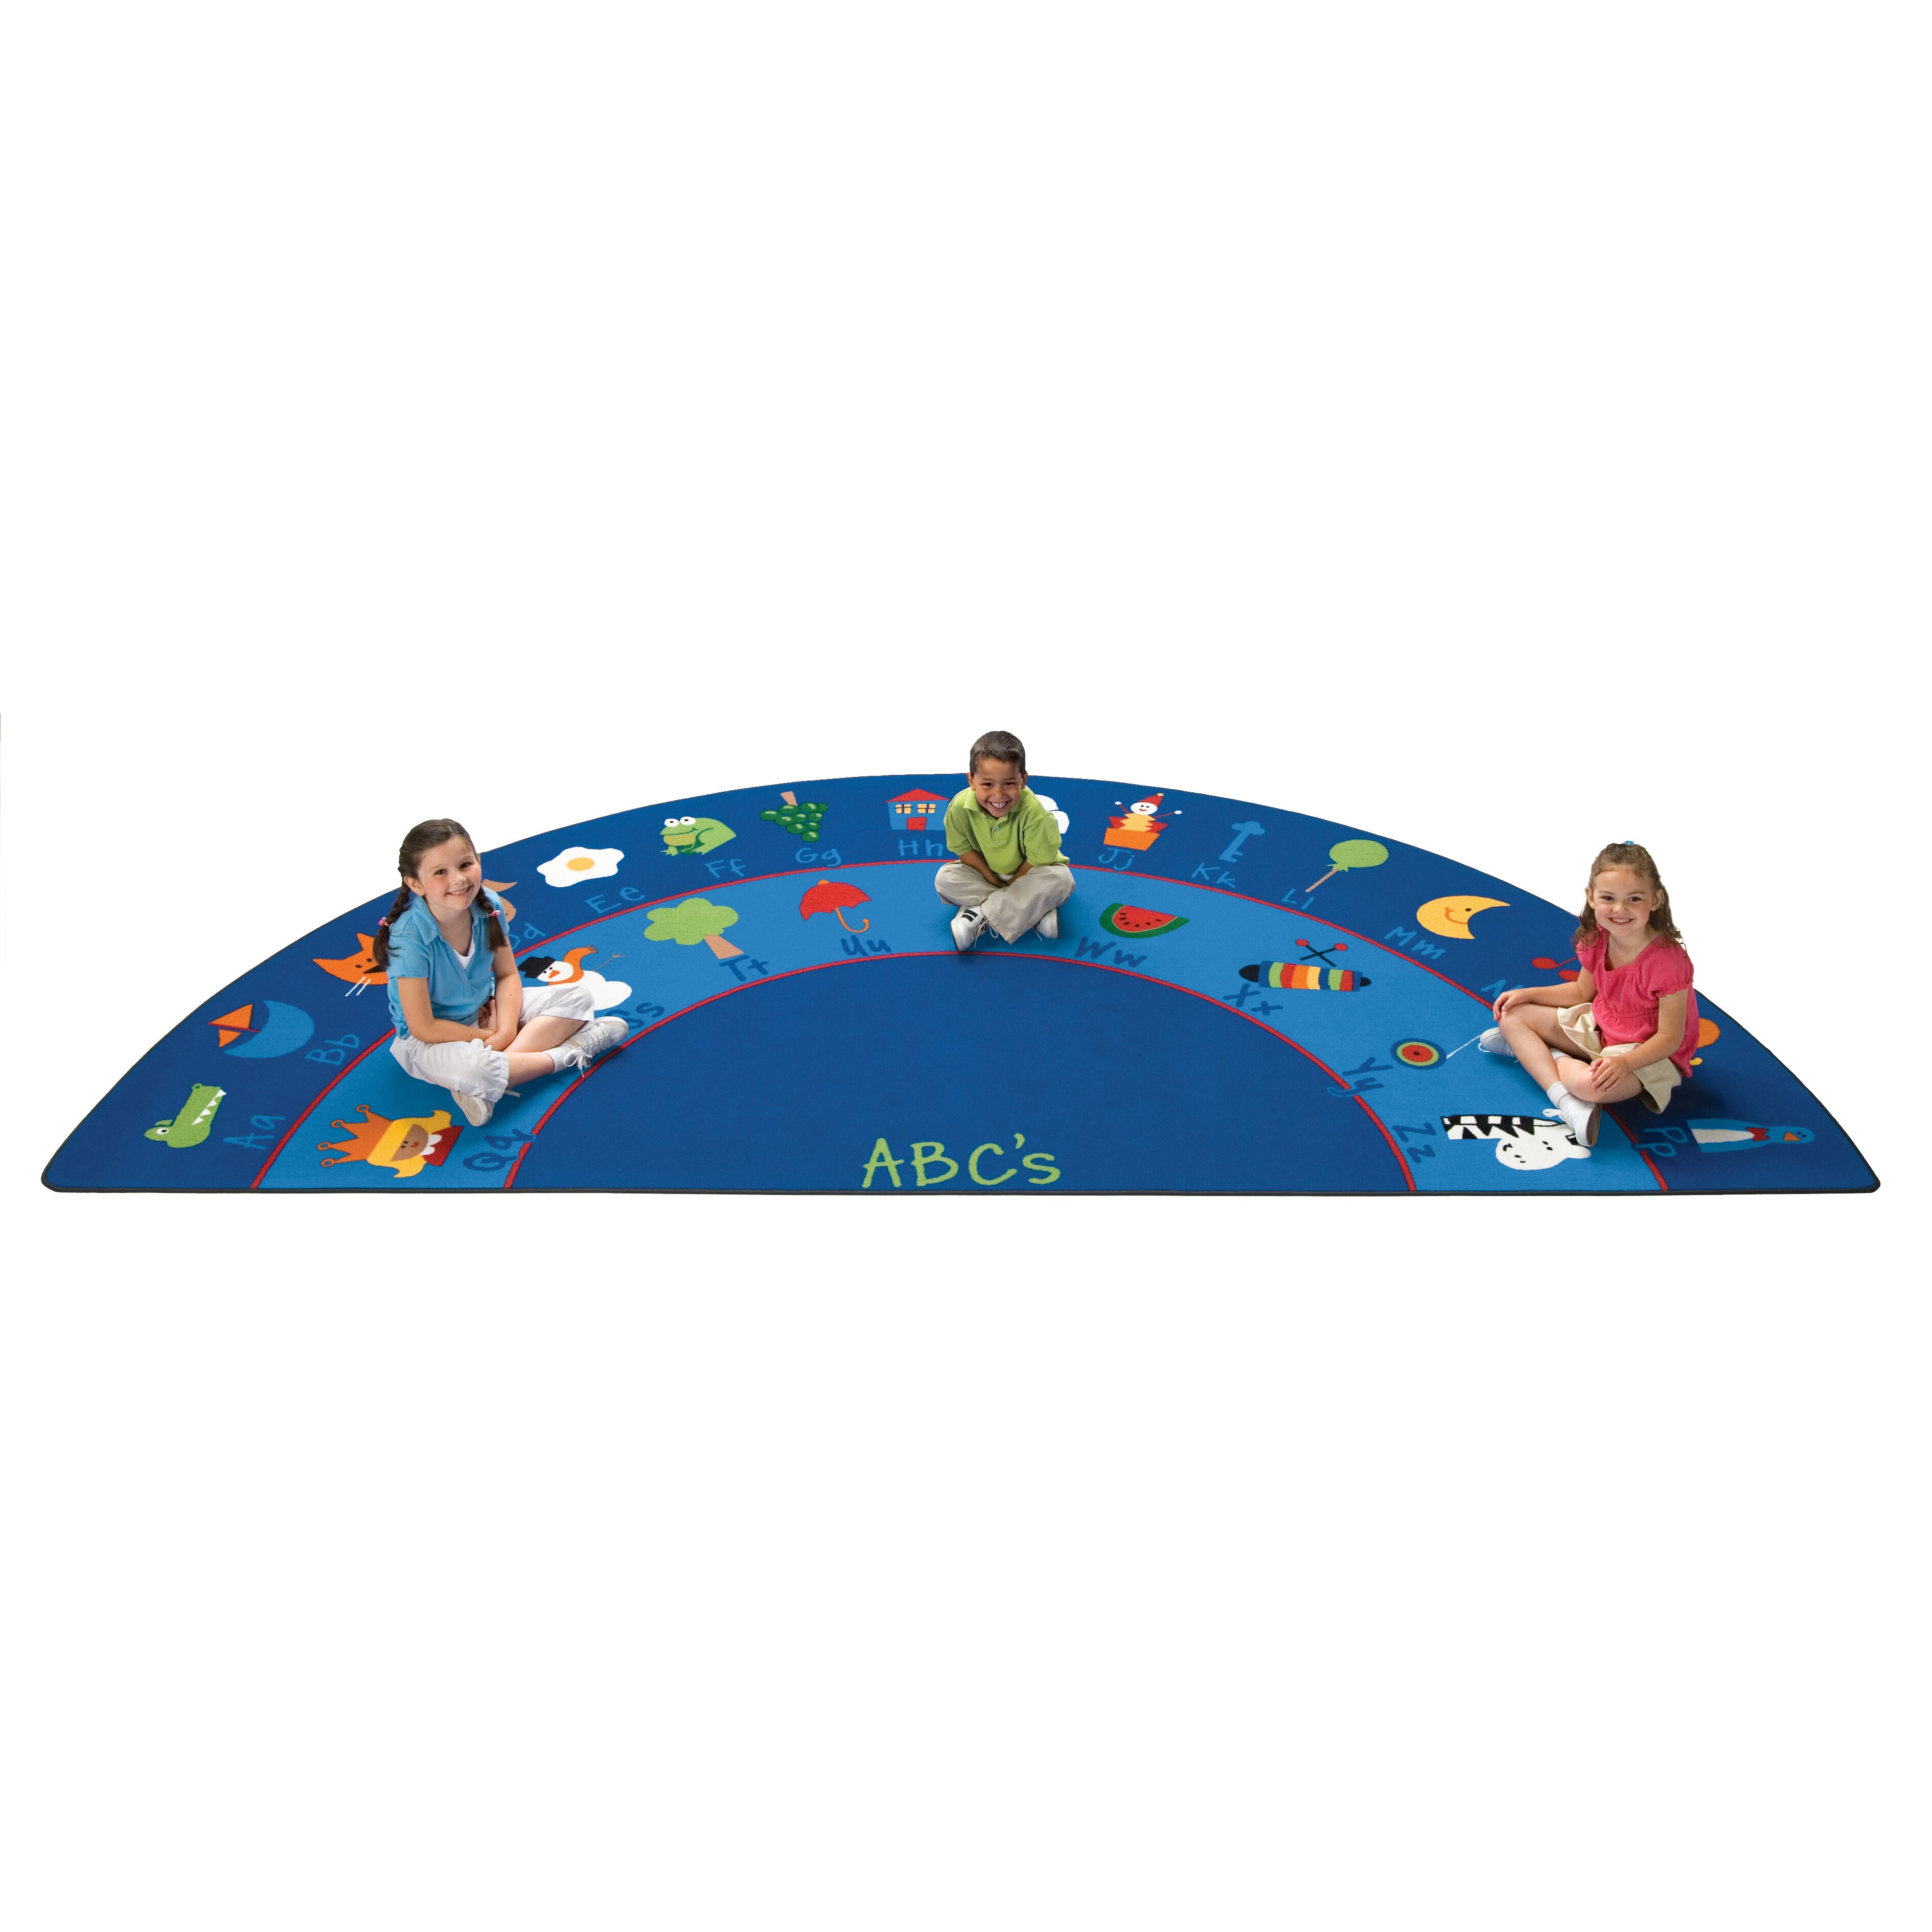 Carpets For Kids Literacy Fun With Phonics Semicircle Kids Area Rug Carpets  For Kids Literacy Fun